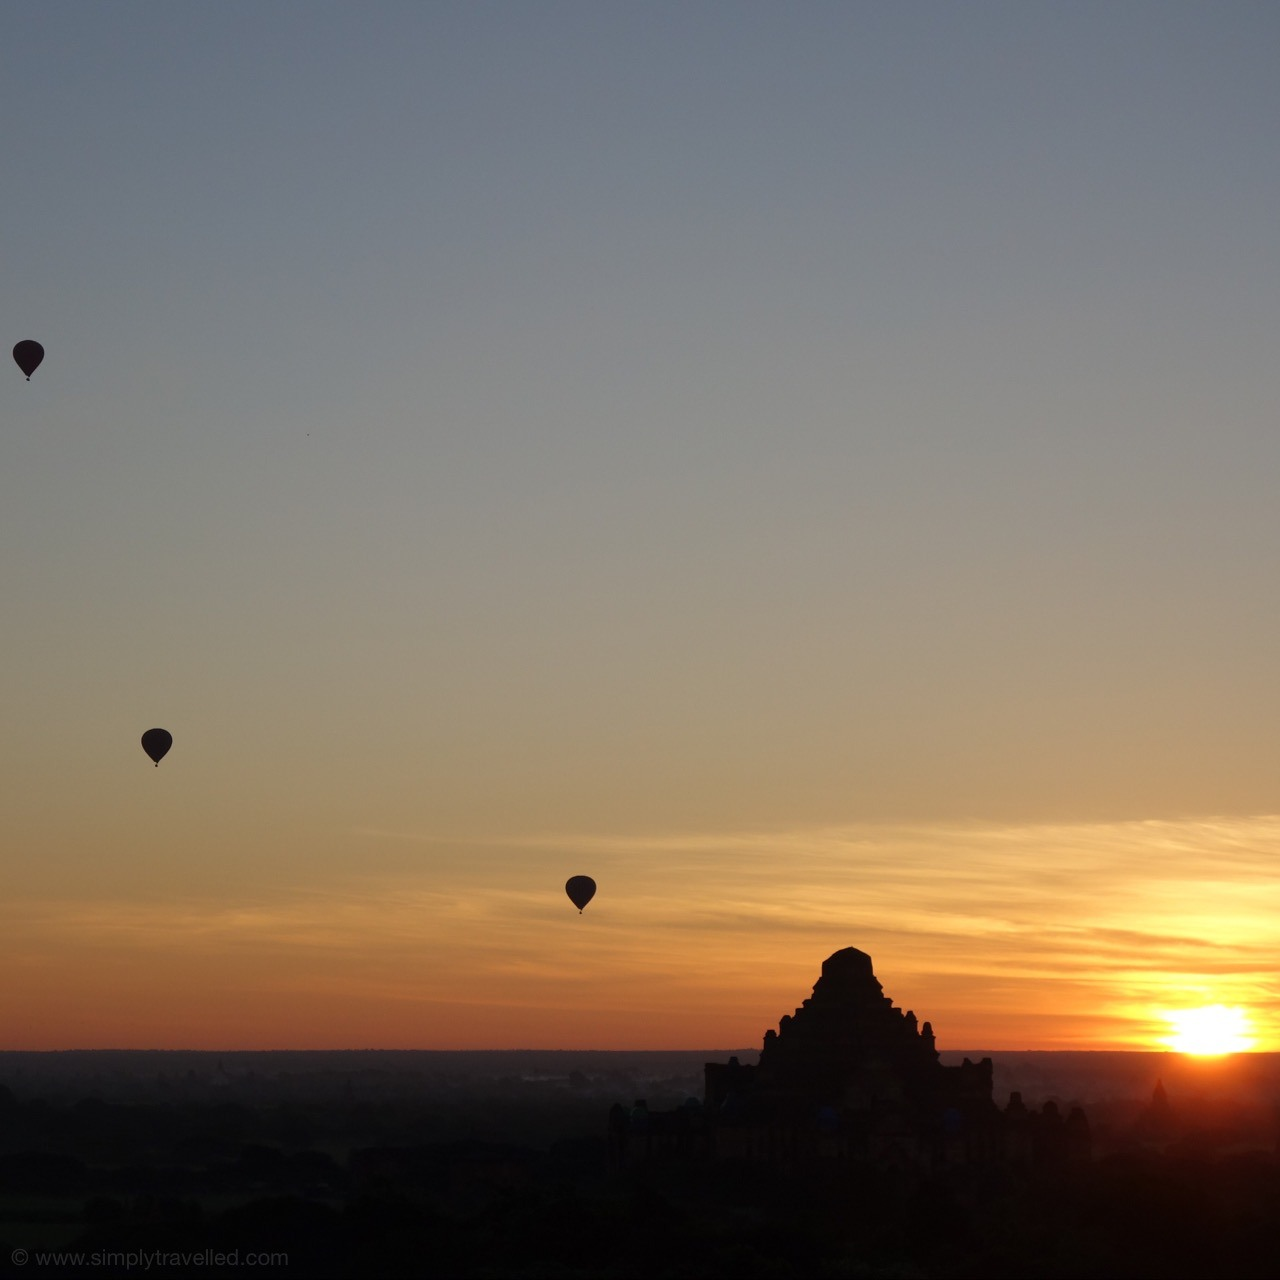 Beautiful Bagan sunrise! The Bet Myanmar